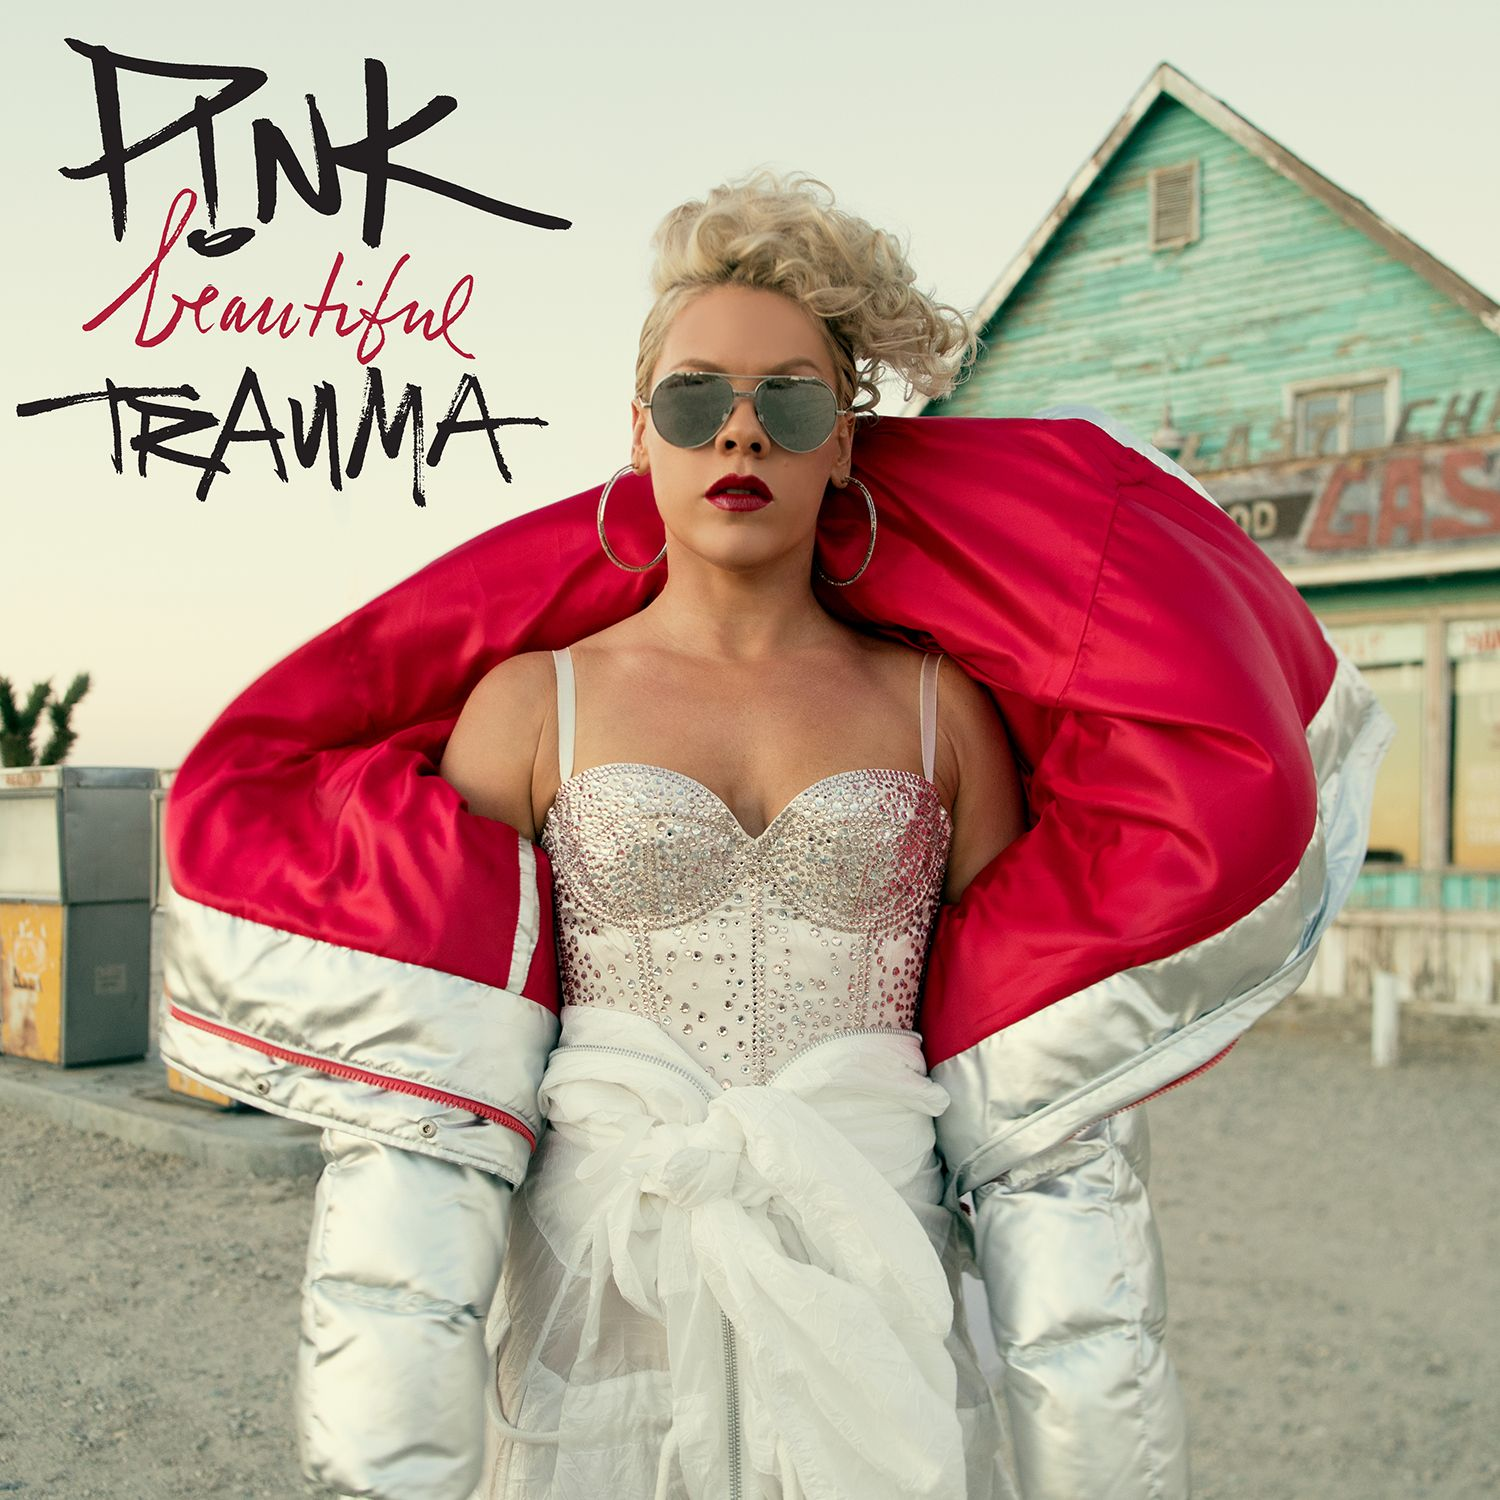 P!nk - Beautiful Trauma album cover